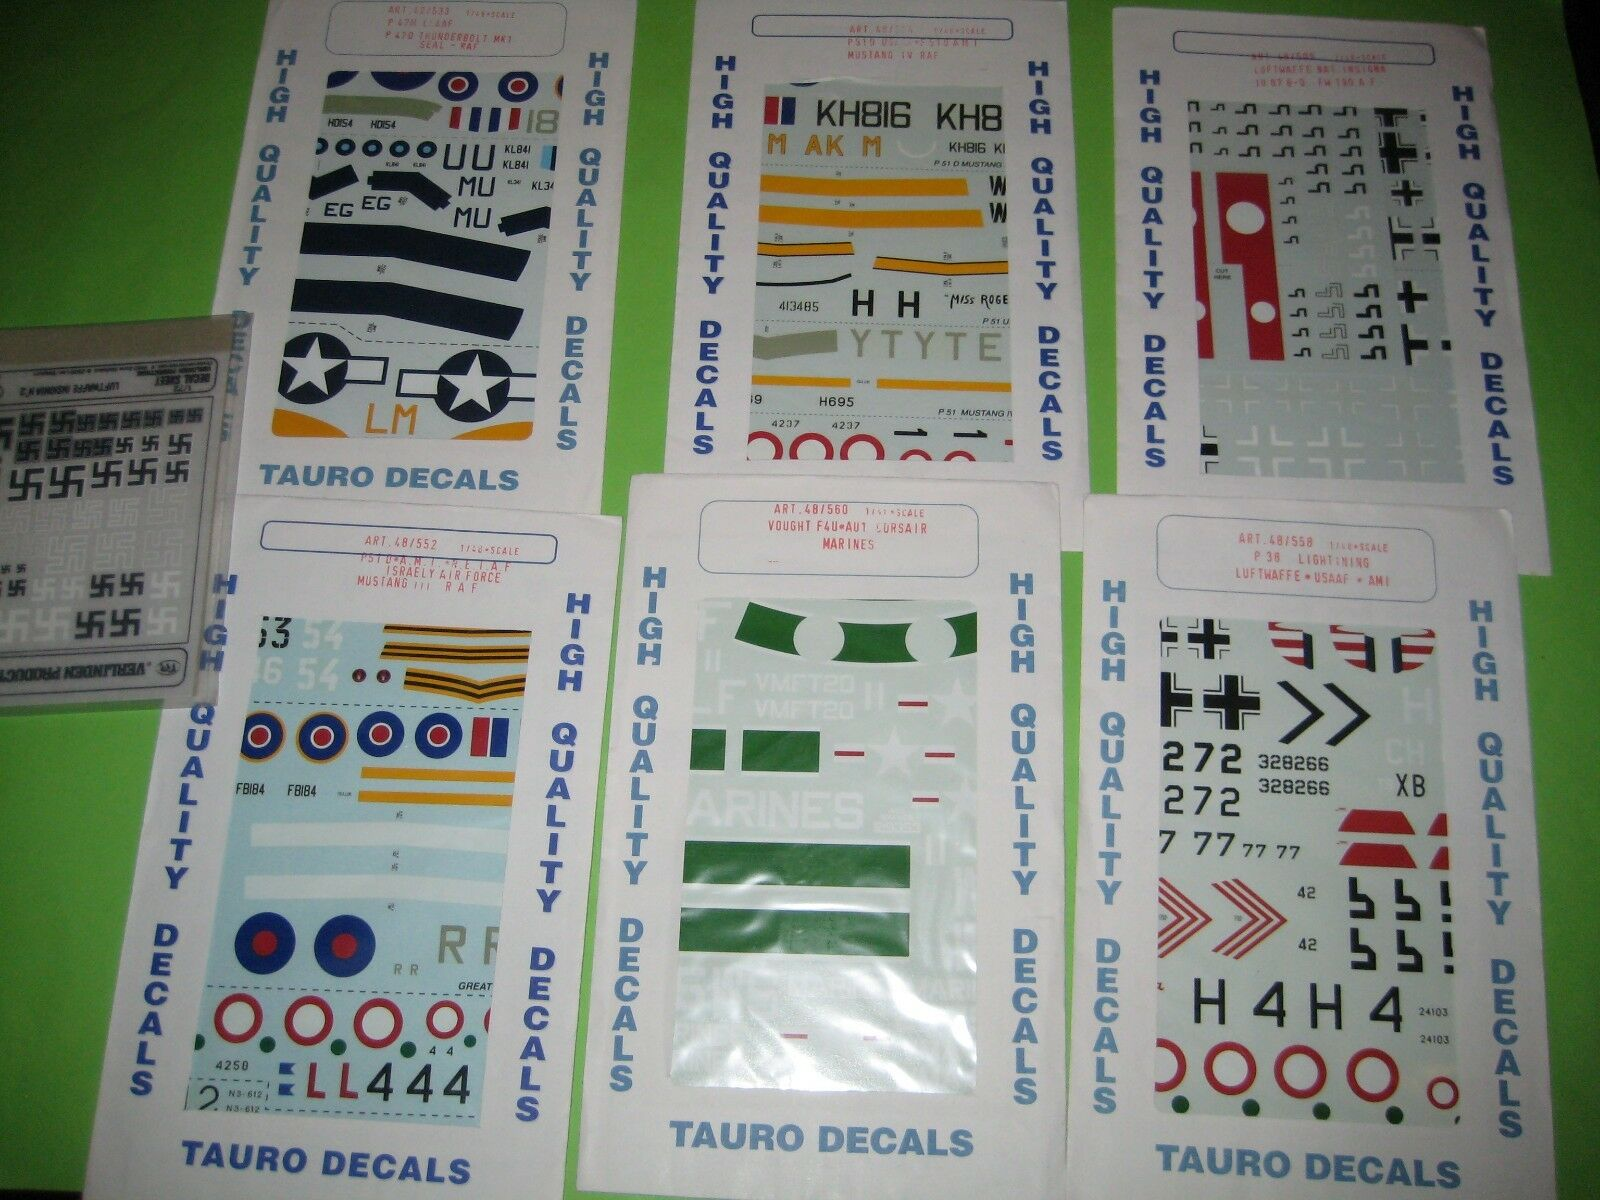 P-47D   P-38   P-51D     F-4U DECALS SETS BY TAUROMODEL 1 48 SCALE - KOMBO SET 1f7c12